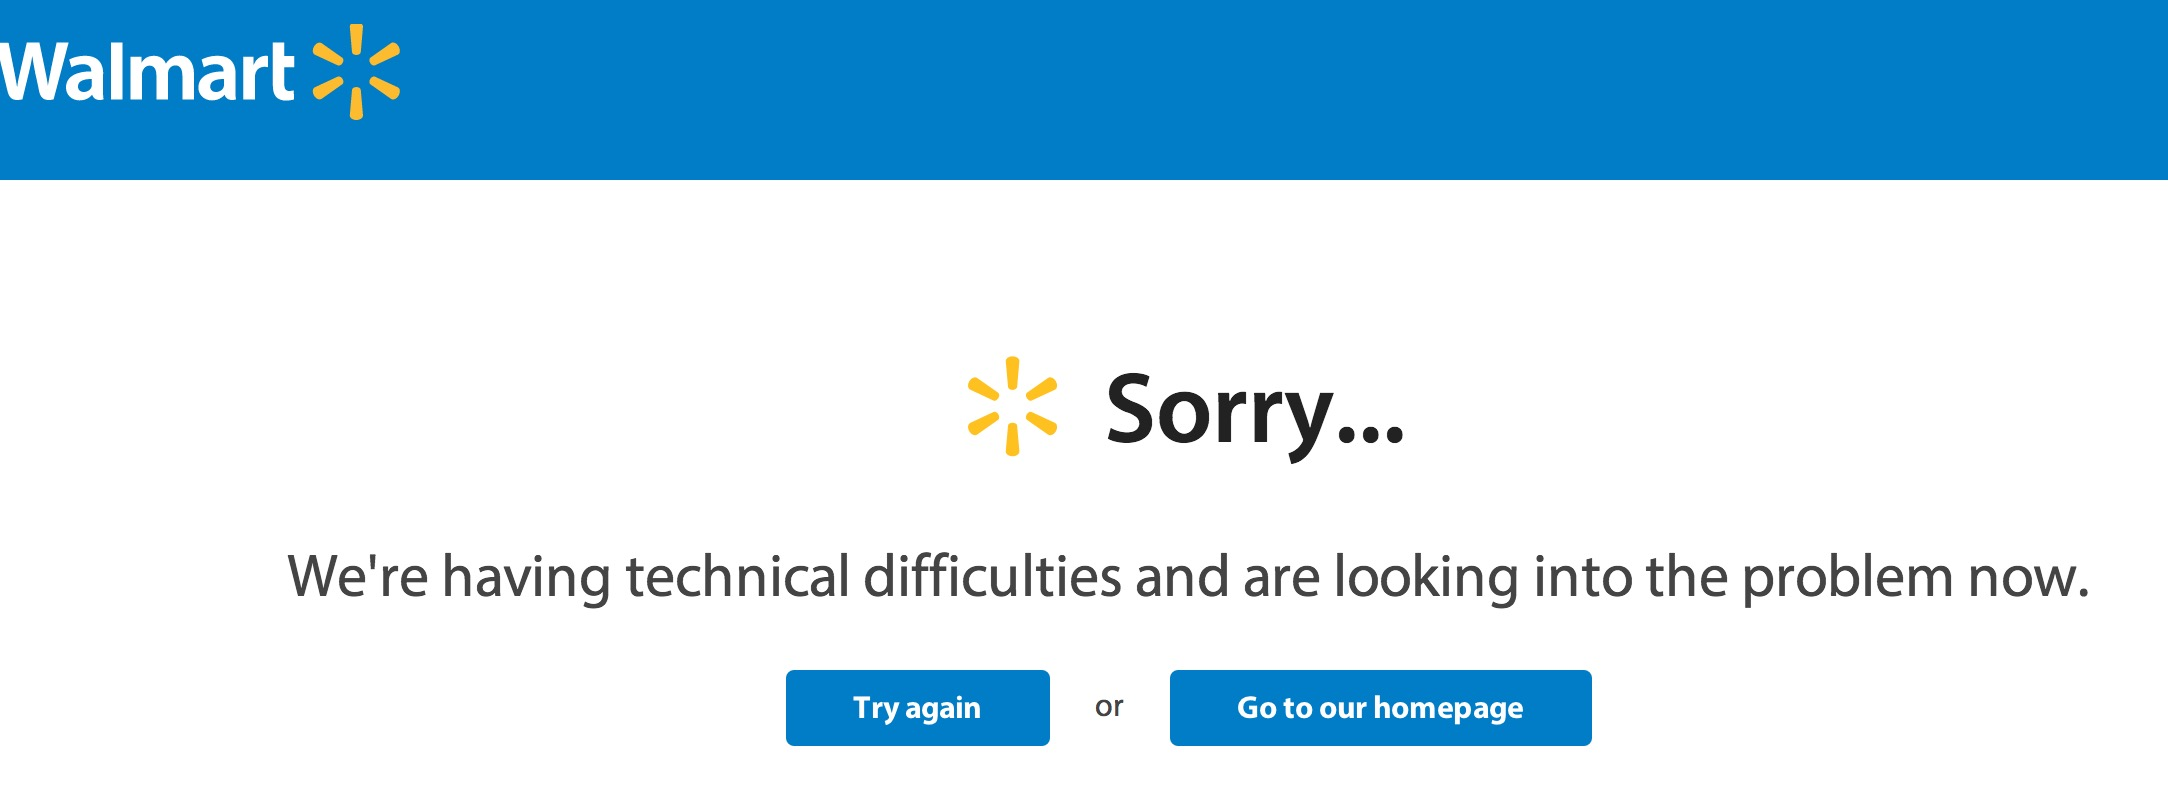 Many users cannot get into the Walmart Black Friday 2014 deals at this time.